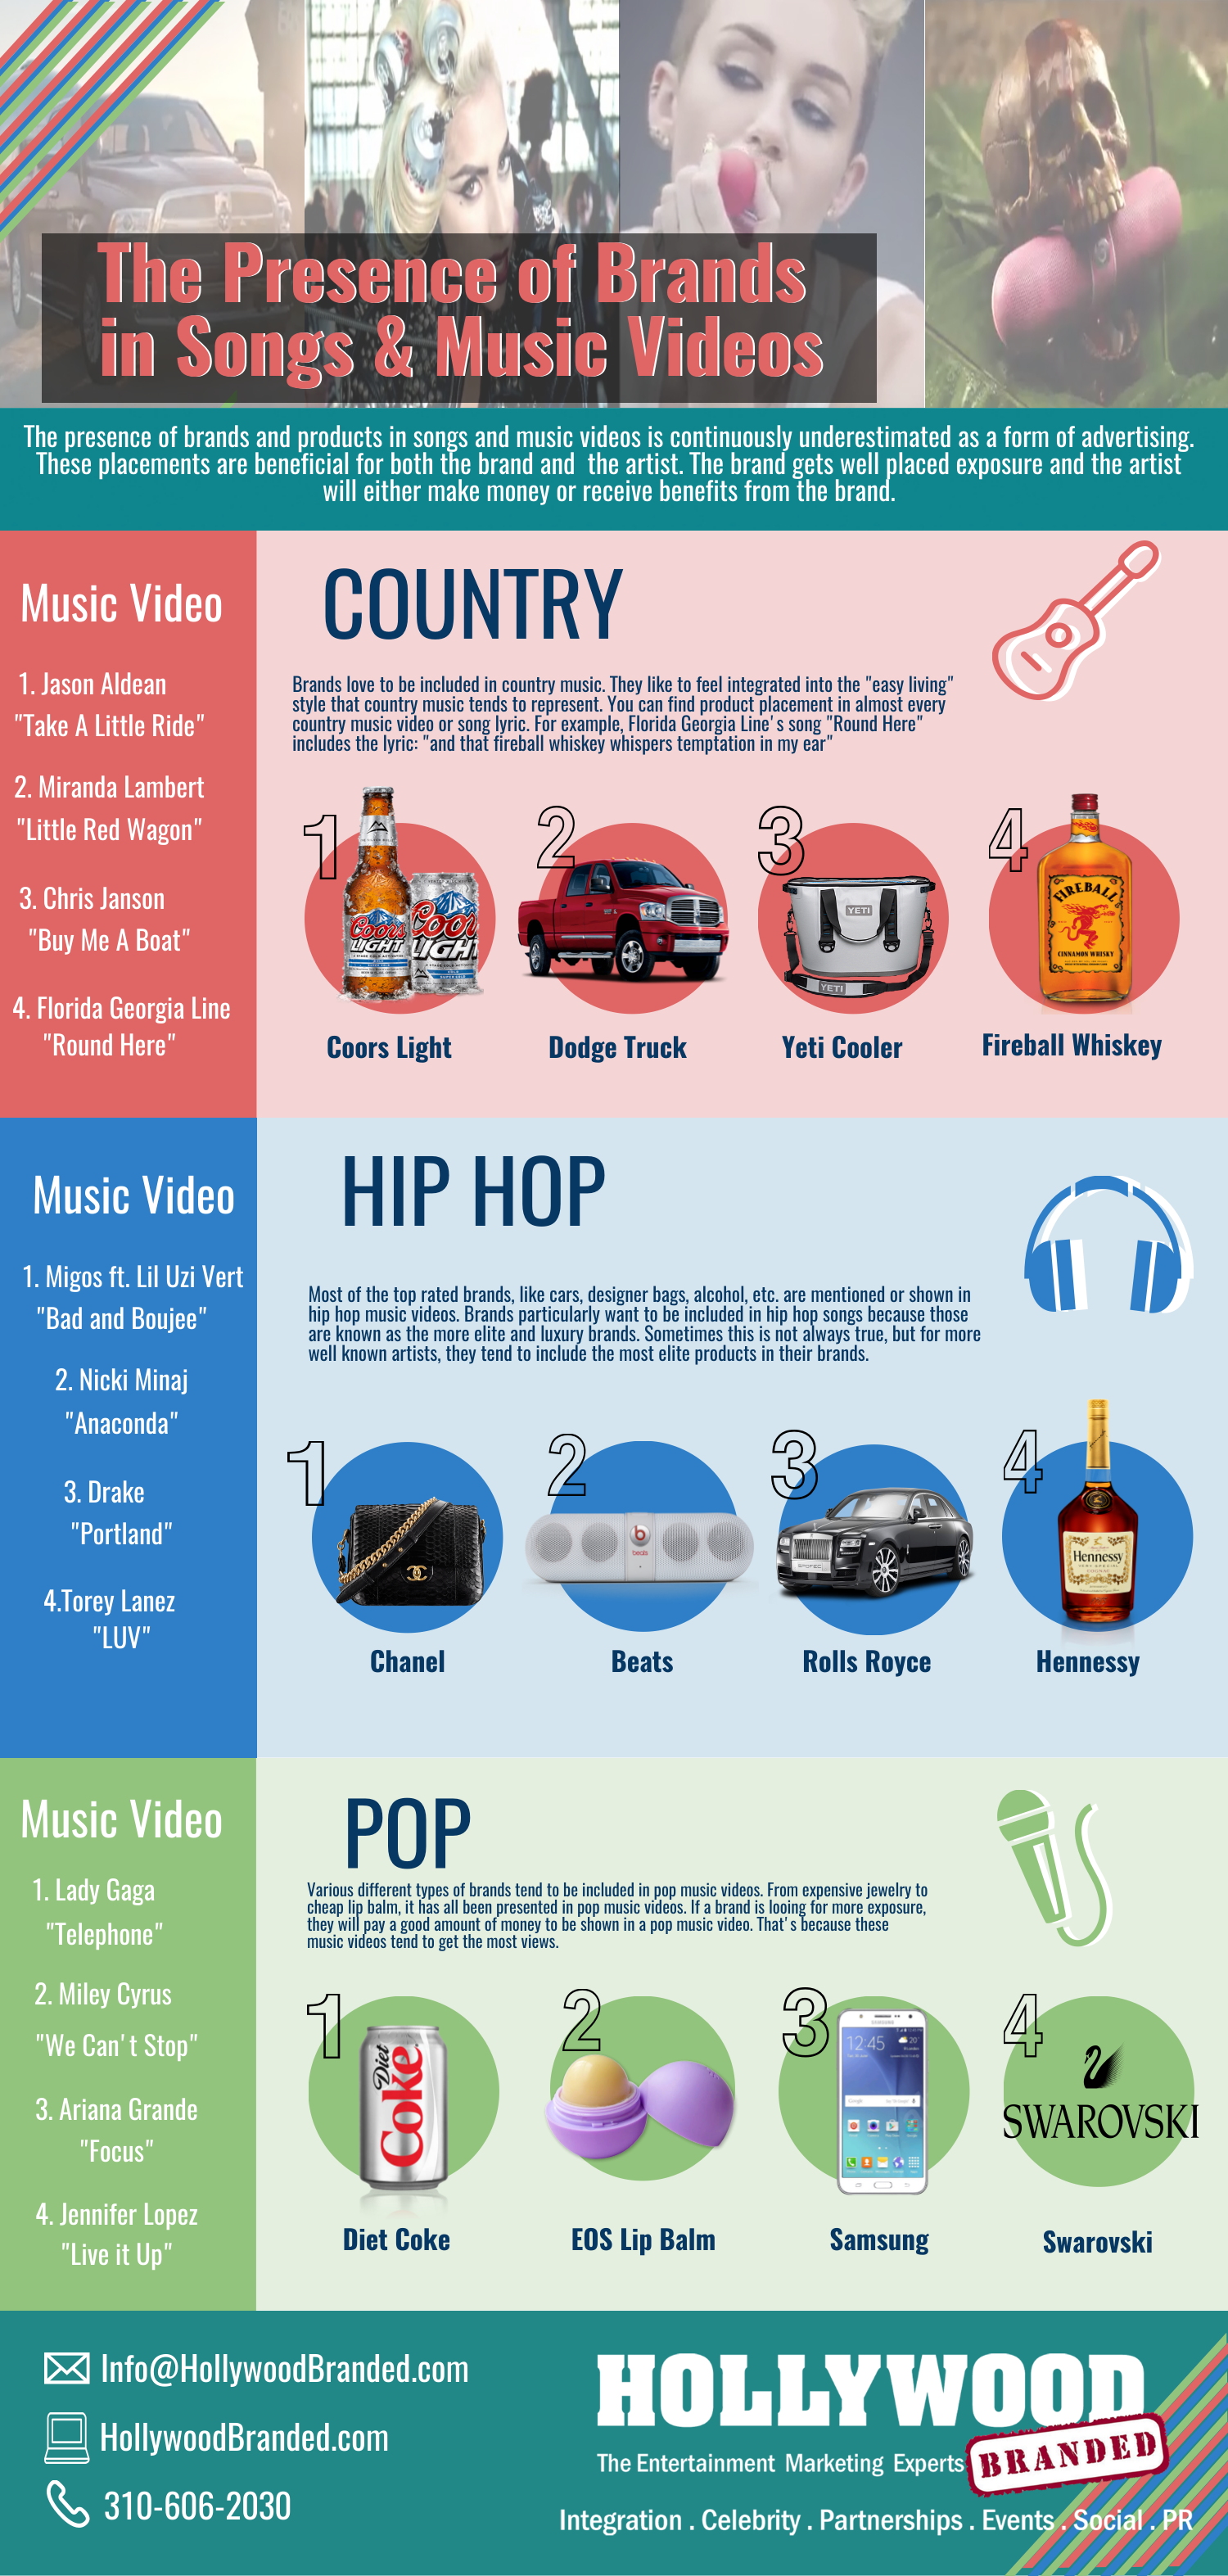 Brands In Music Videos By Genre Infographic Hollywood Branded.png